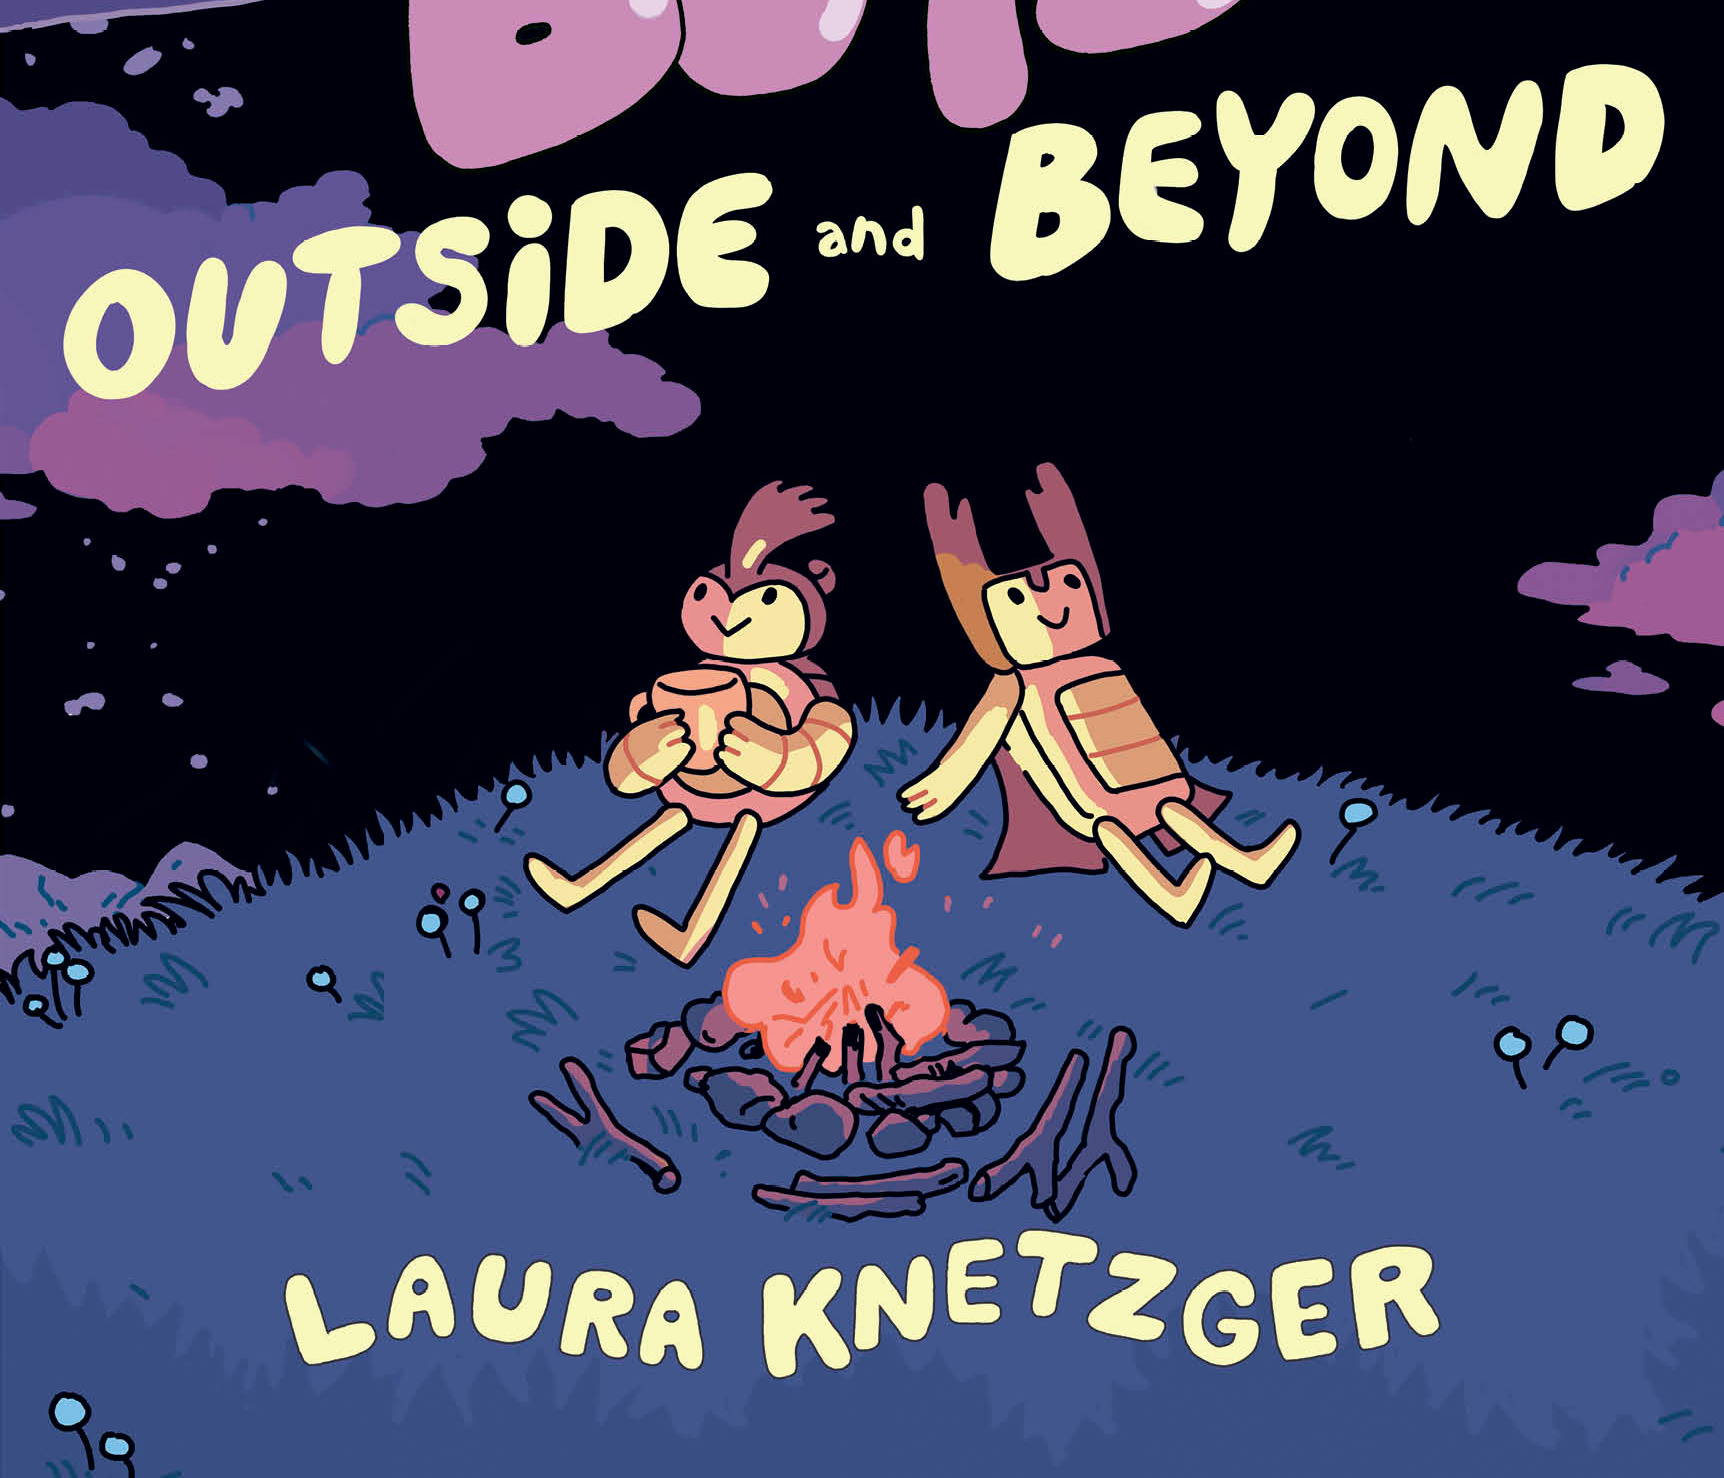 'Bug Boys: Outside and Beyond' bridges the surreal with understanding the world